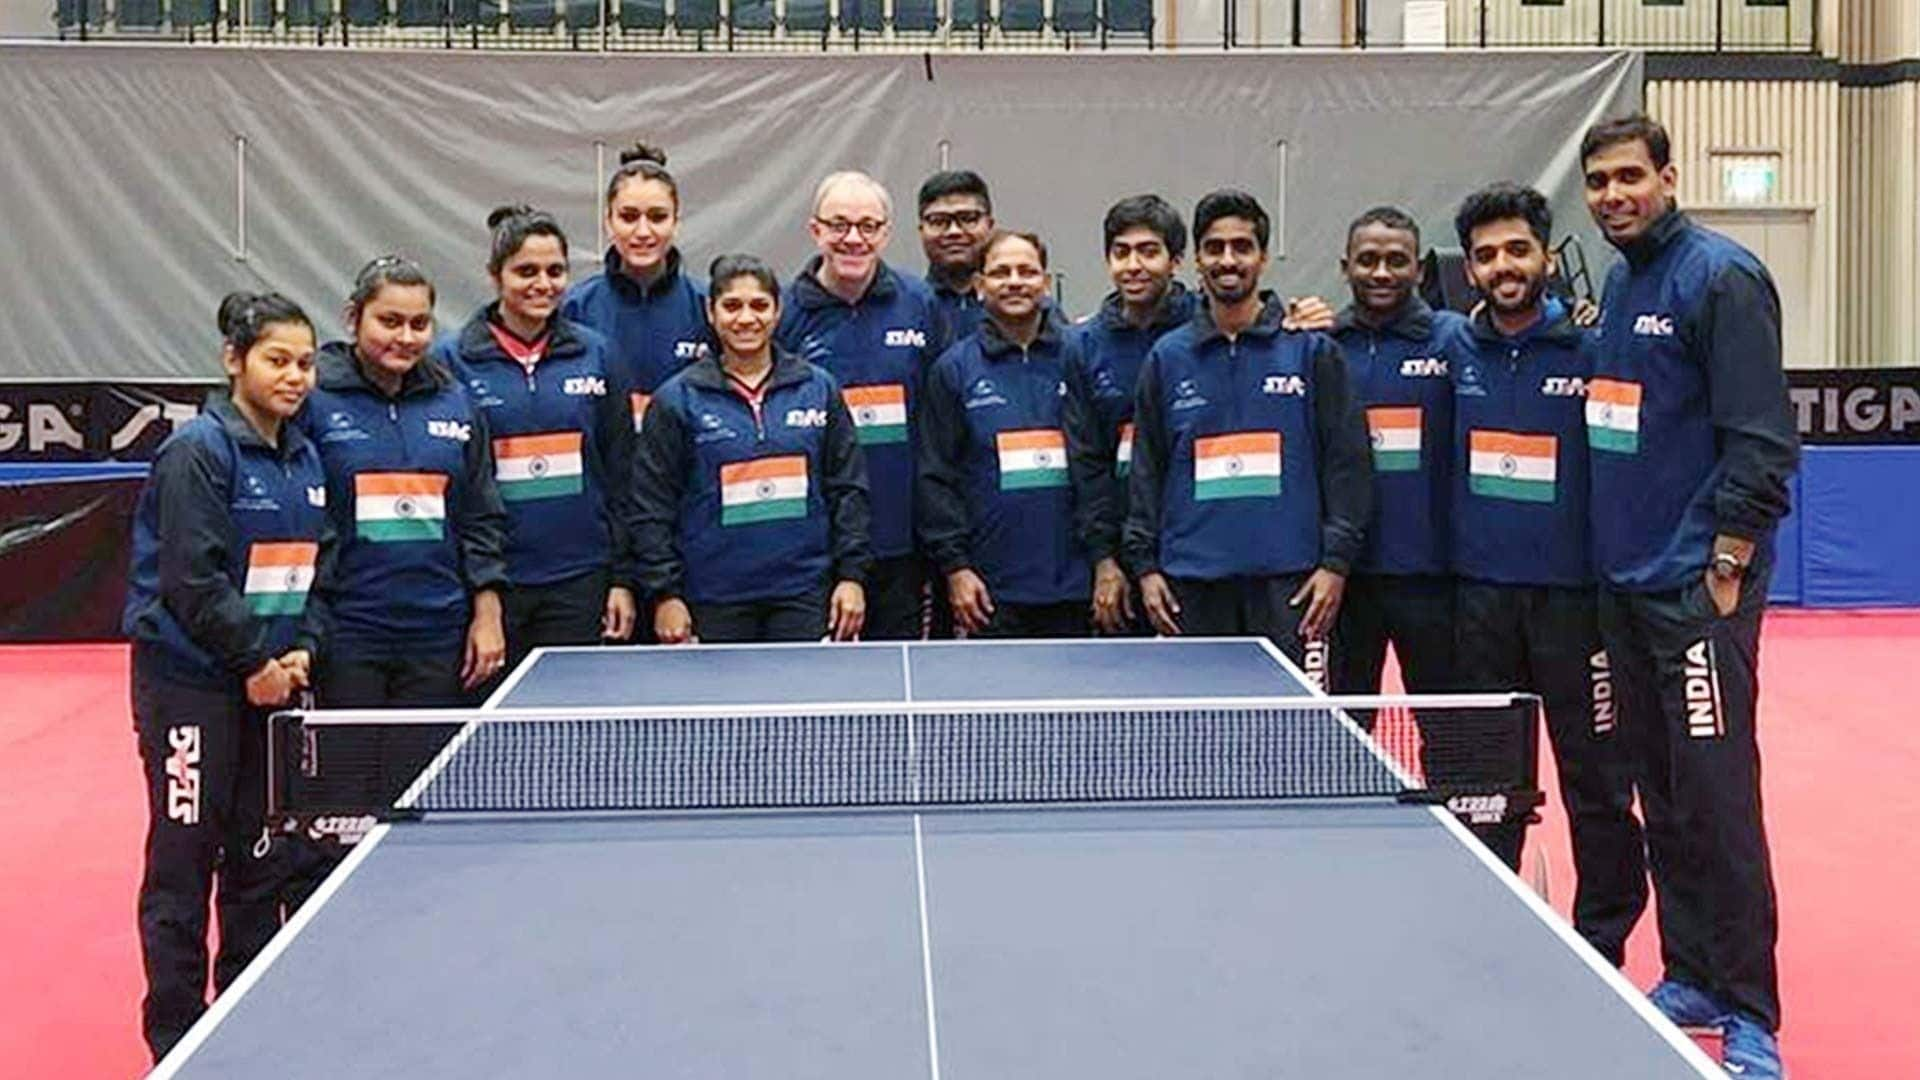 Table Tennis, Indian Table Tennis team, Indian men table tennis team, Indian women table tennis team, Commonwealth Table Tennis Championships 2019,